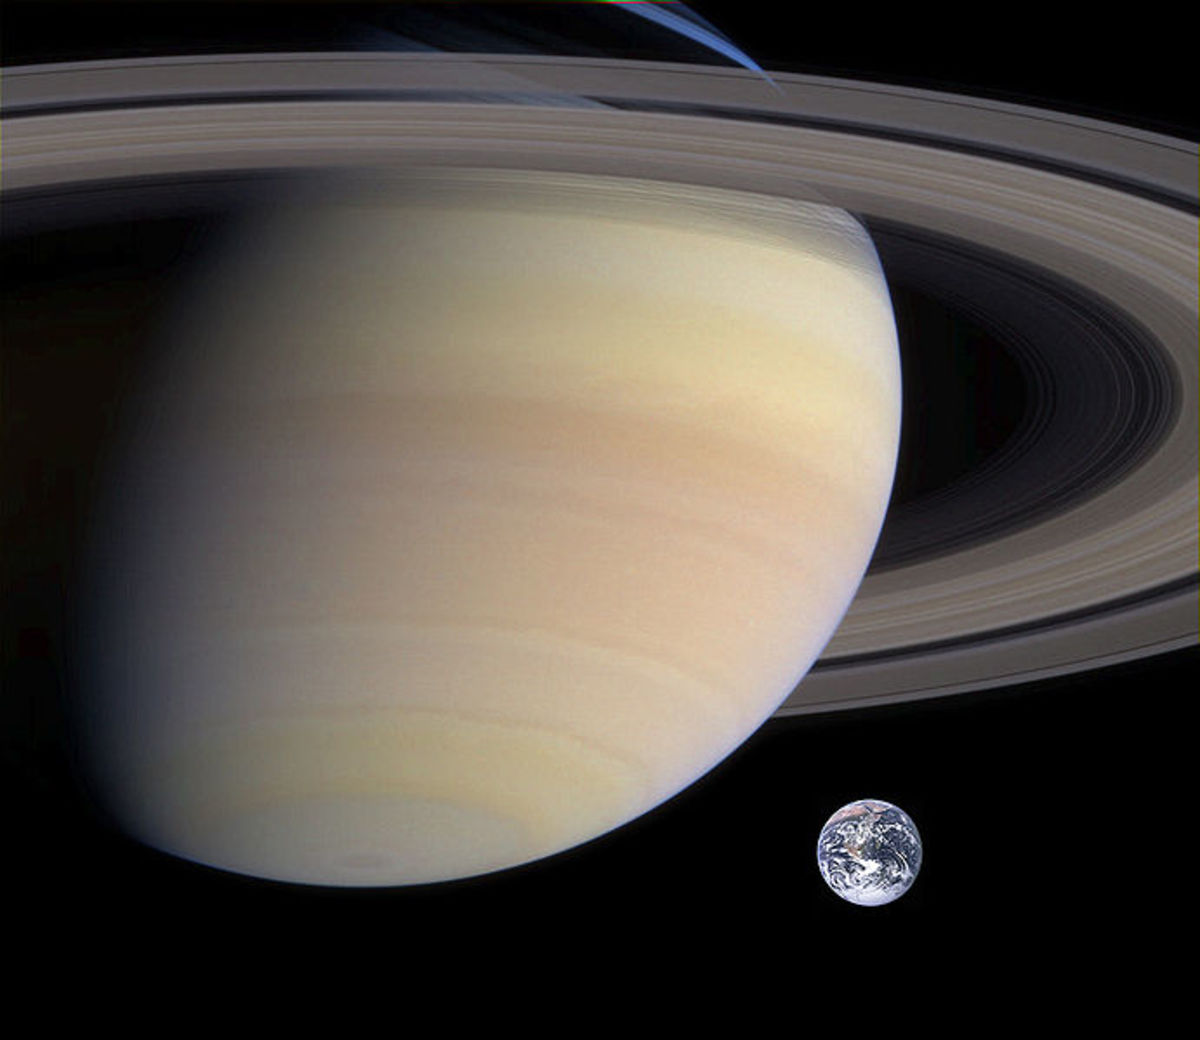 Saturn compared to the Earth